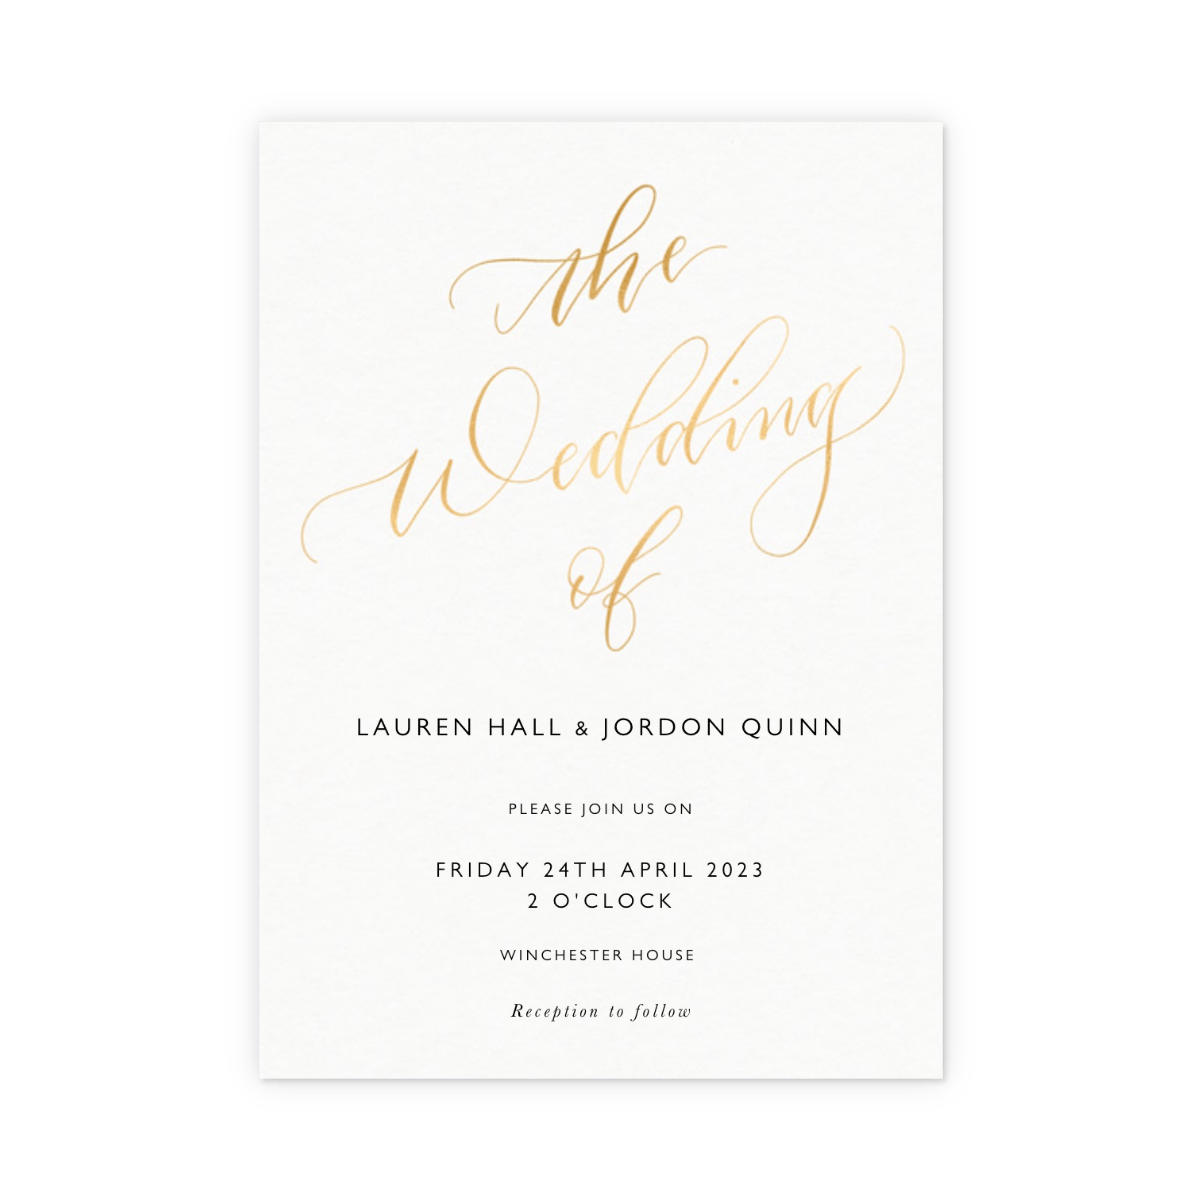 Https%3a%2f%2fwww.papier.com%2fproduct image%2f68588%2f4%2fthe wedding of calligraphy 16264 vorderseite 1552573811.png?ixlib=rb 1.1